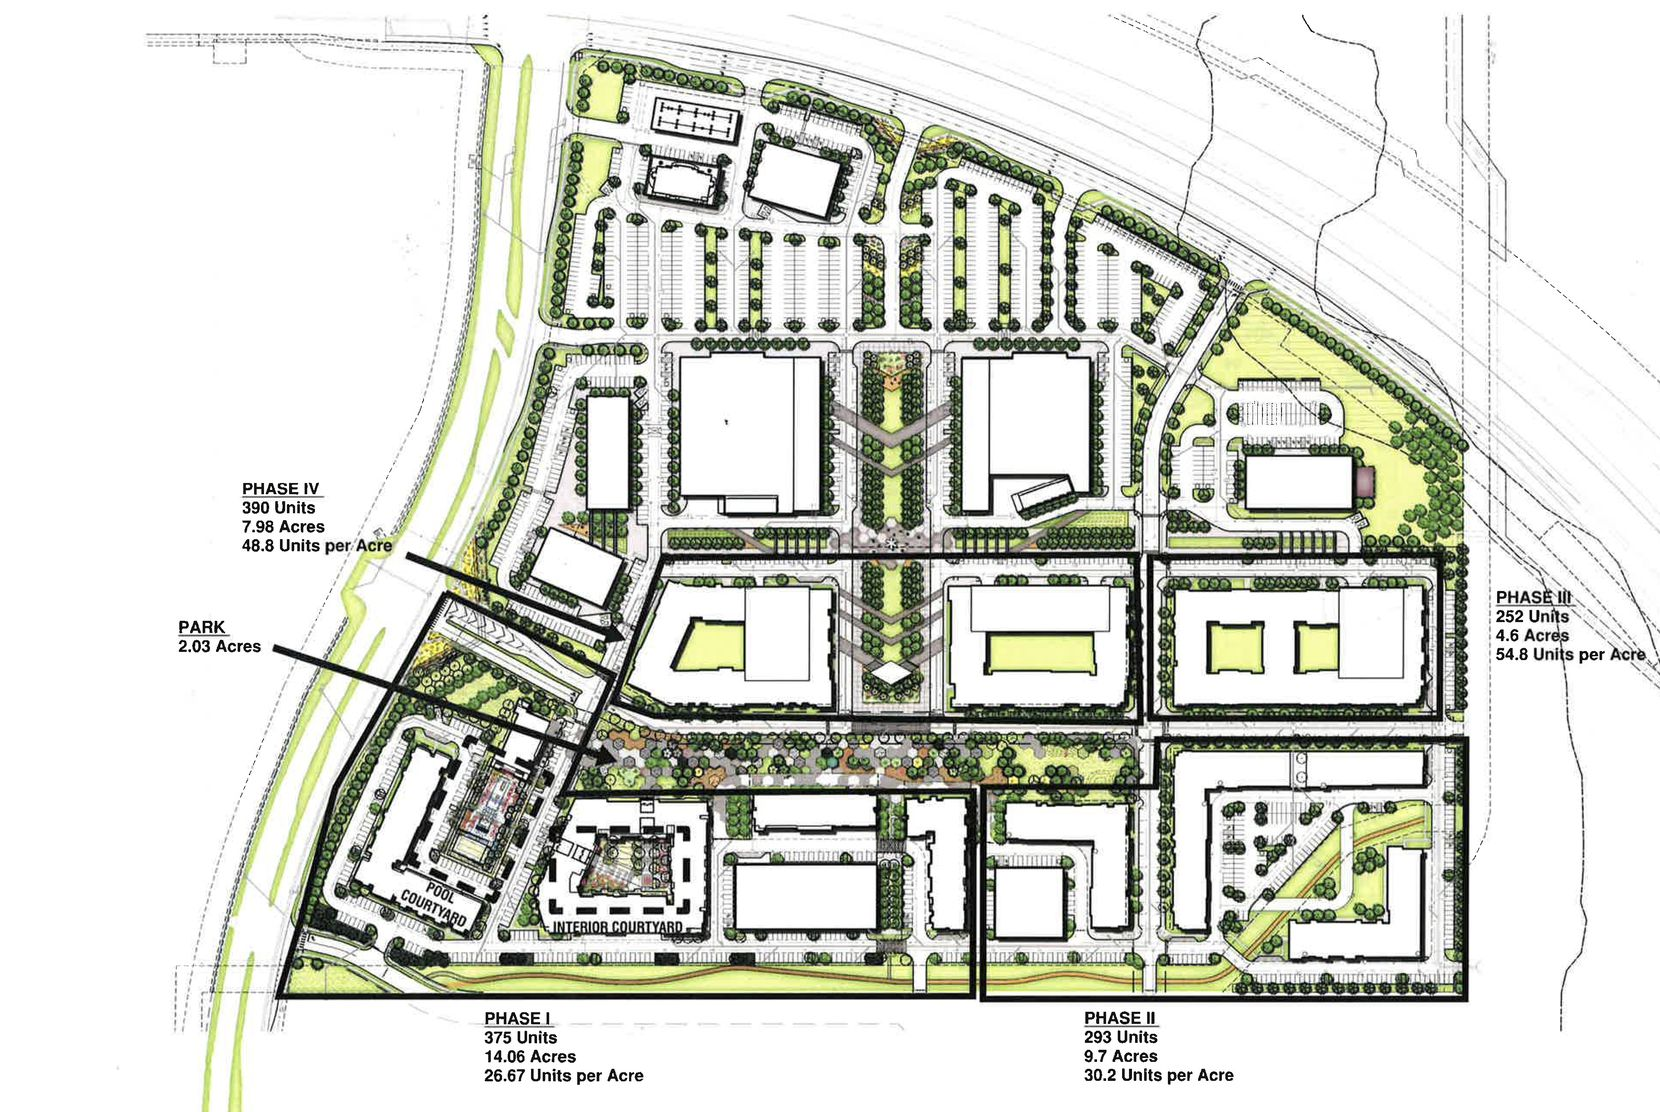 The project is planned for four phases of apartments, a two-acre park plus retail and office space.